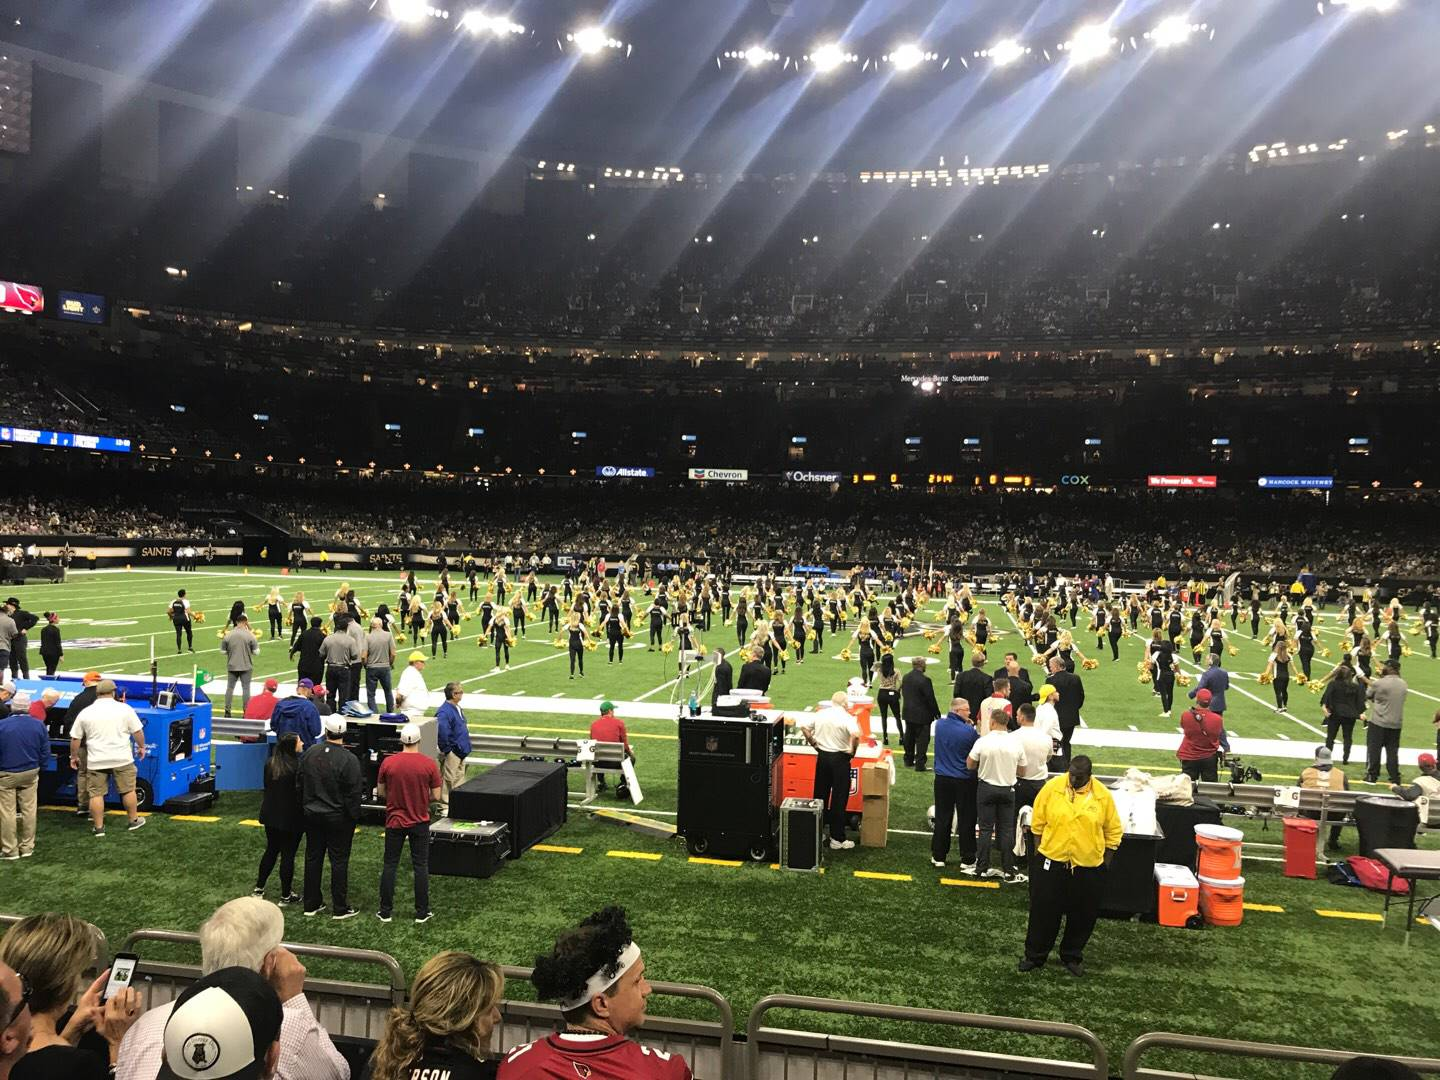 Mercedes-Benz Superdome Section 114 Row 6 Seat 7